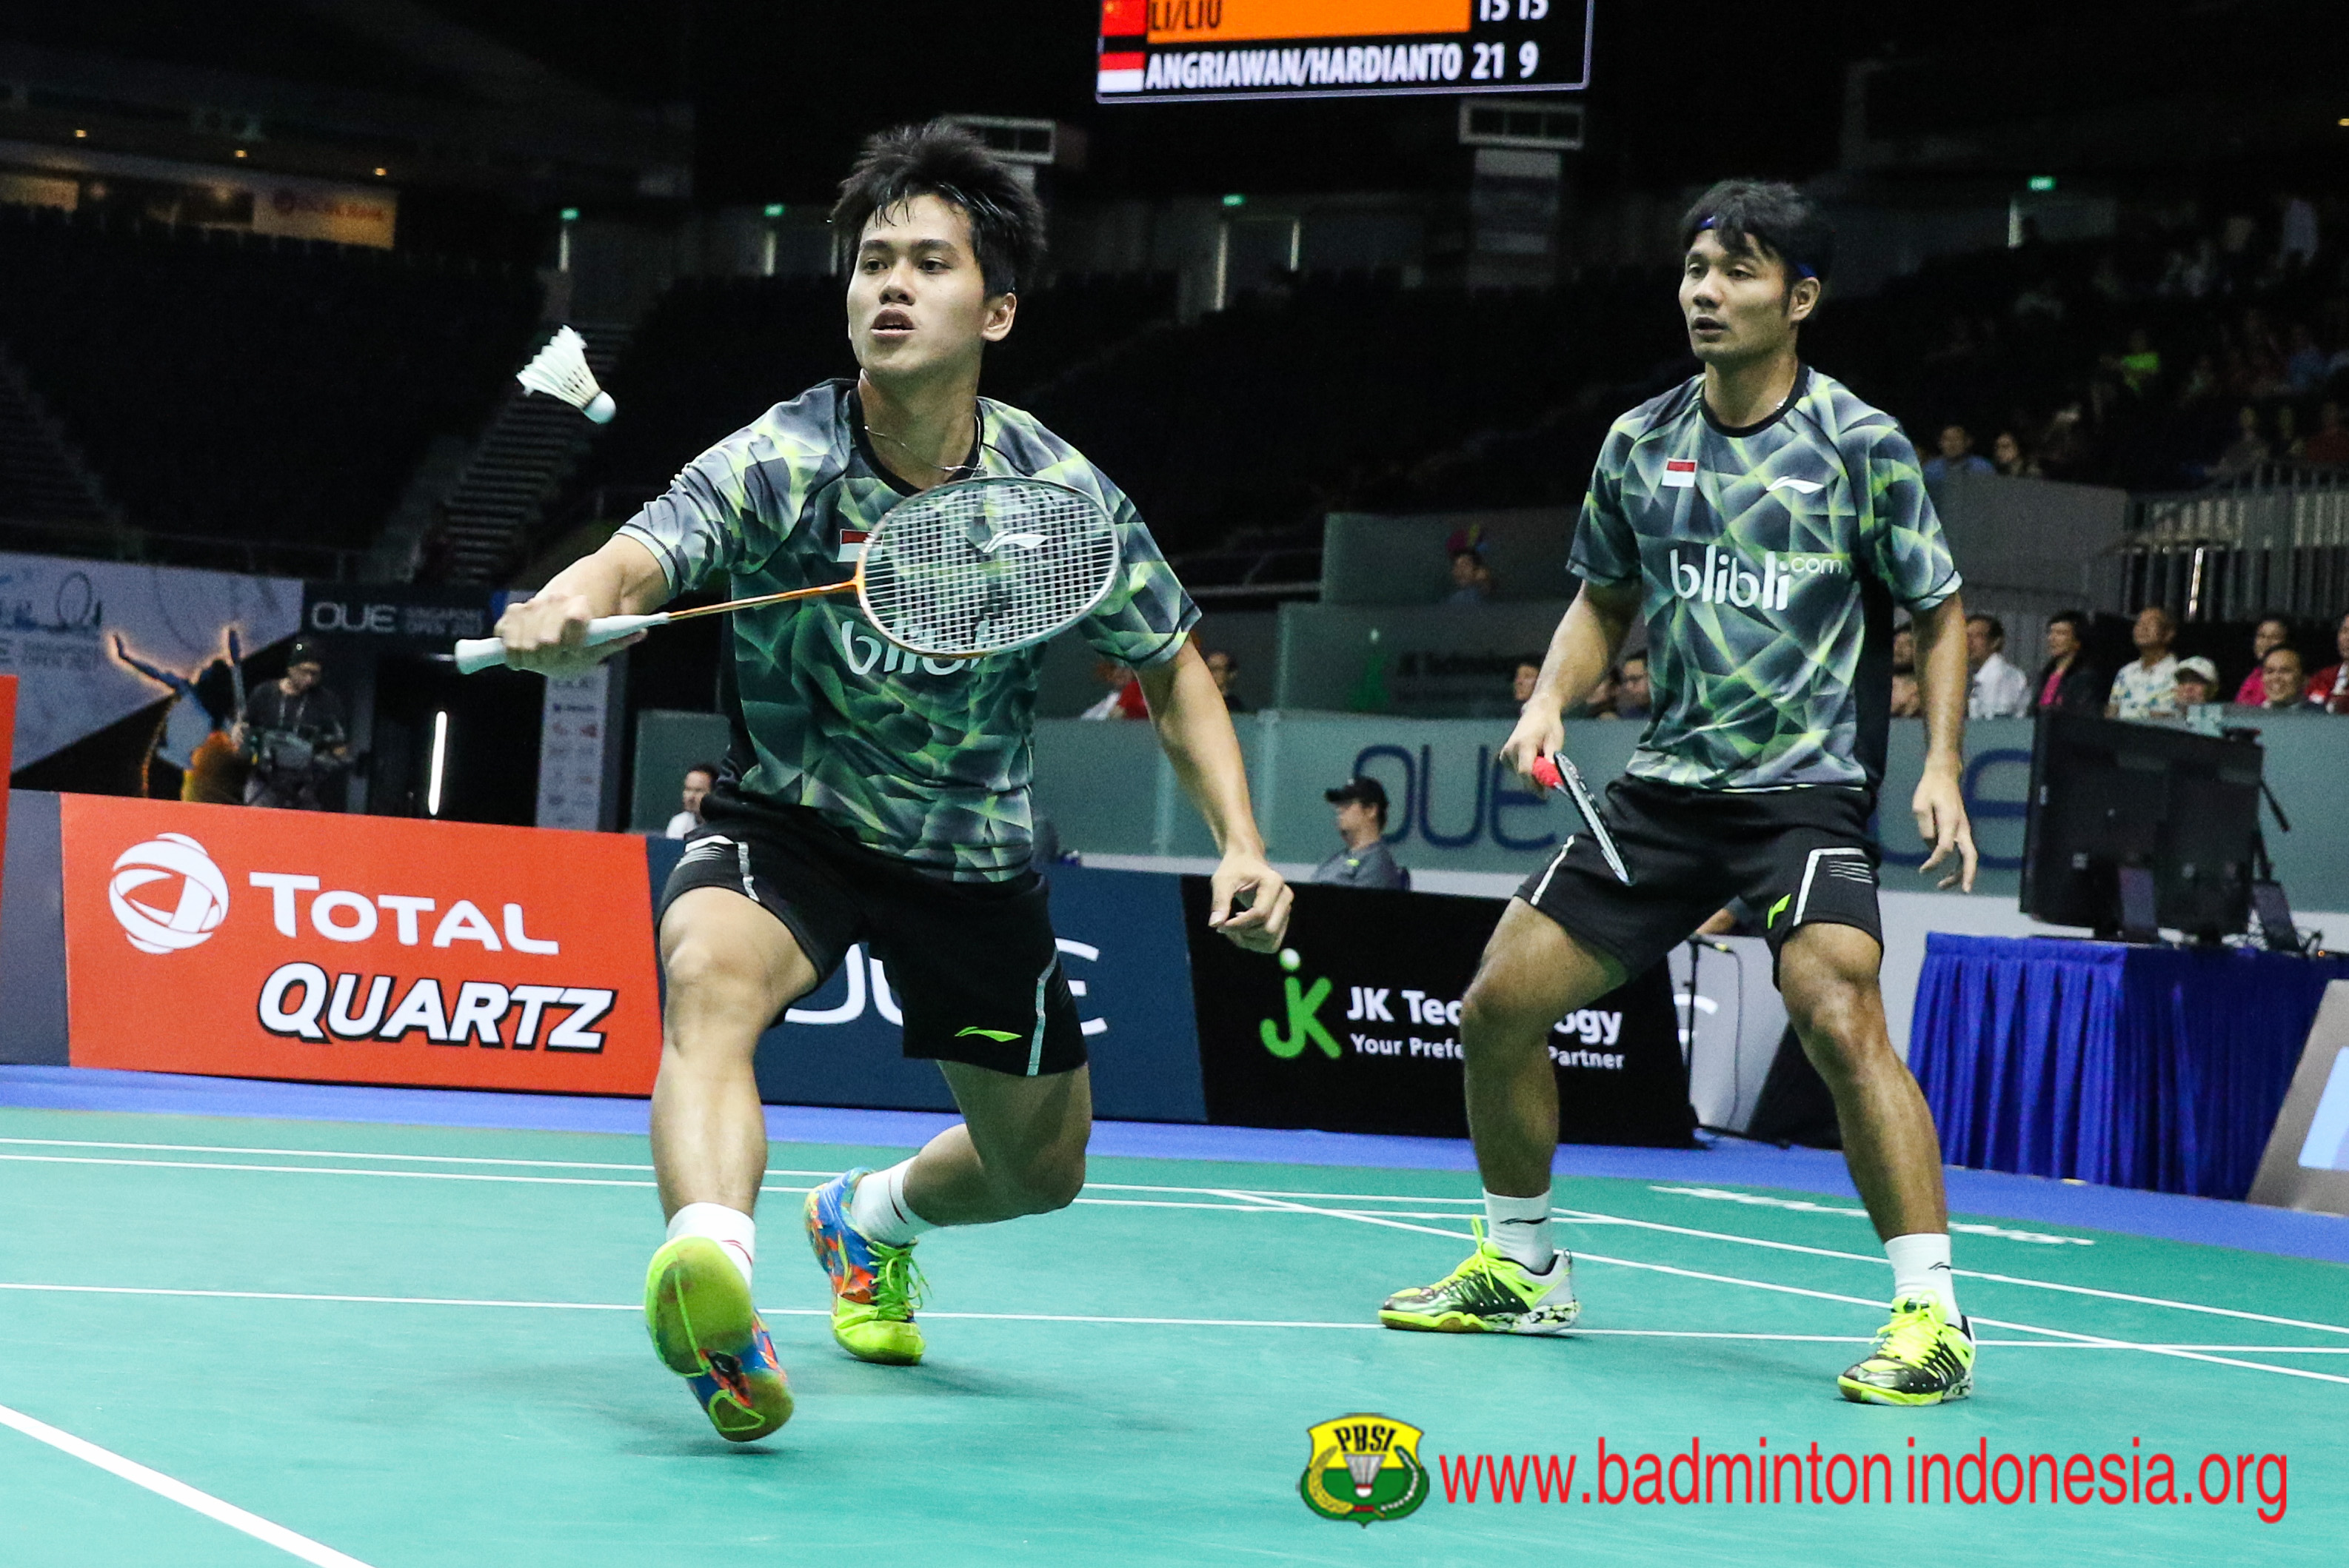 Djarum Badminton China Masters 2017 Berry Hardi Tundukkan